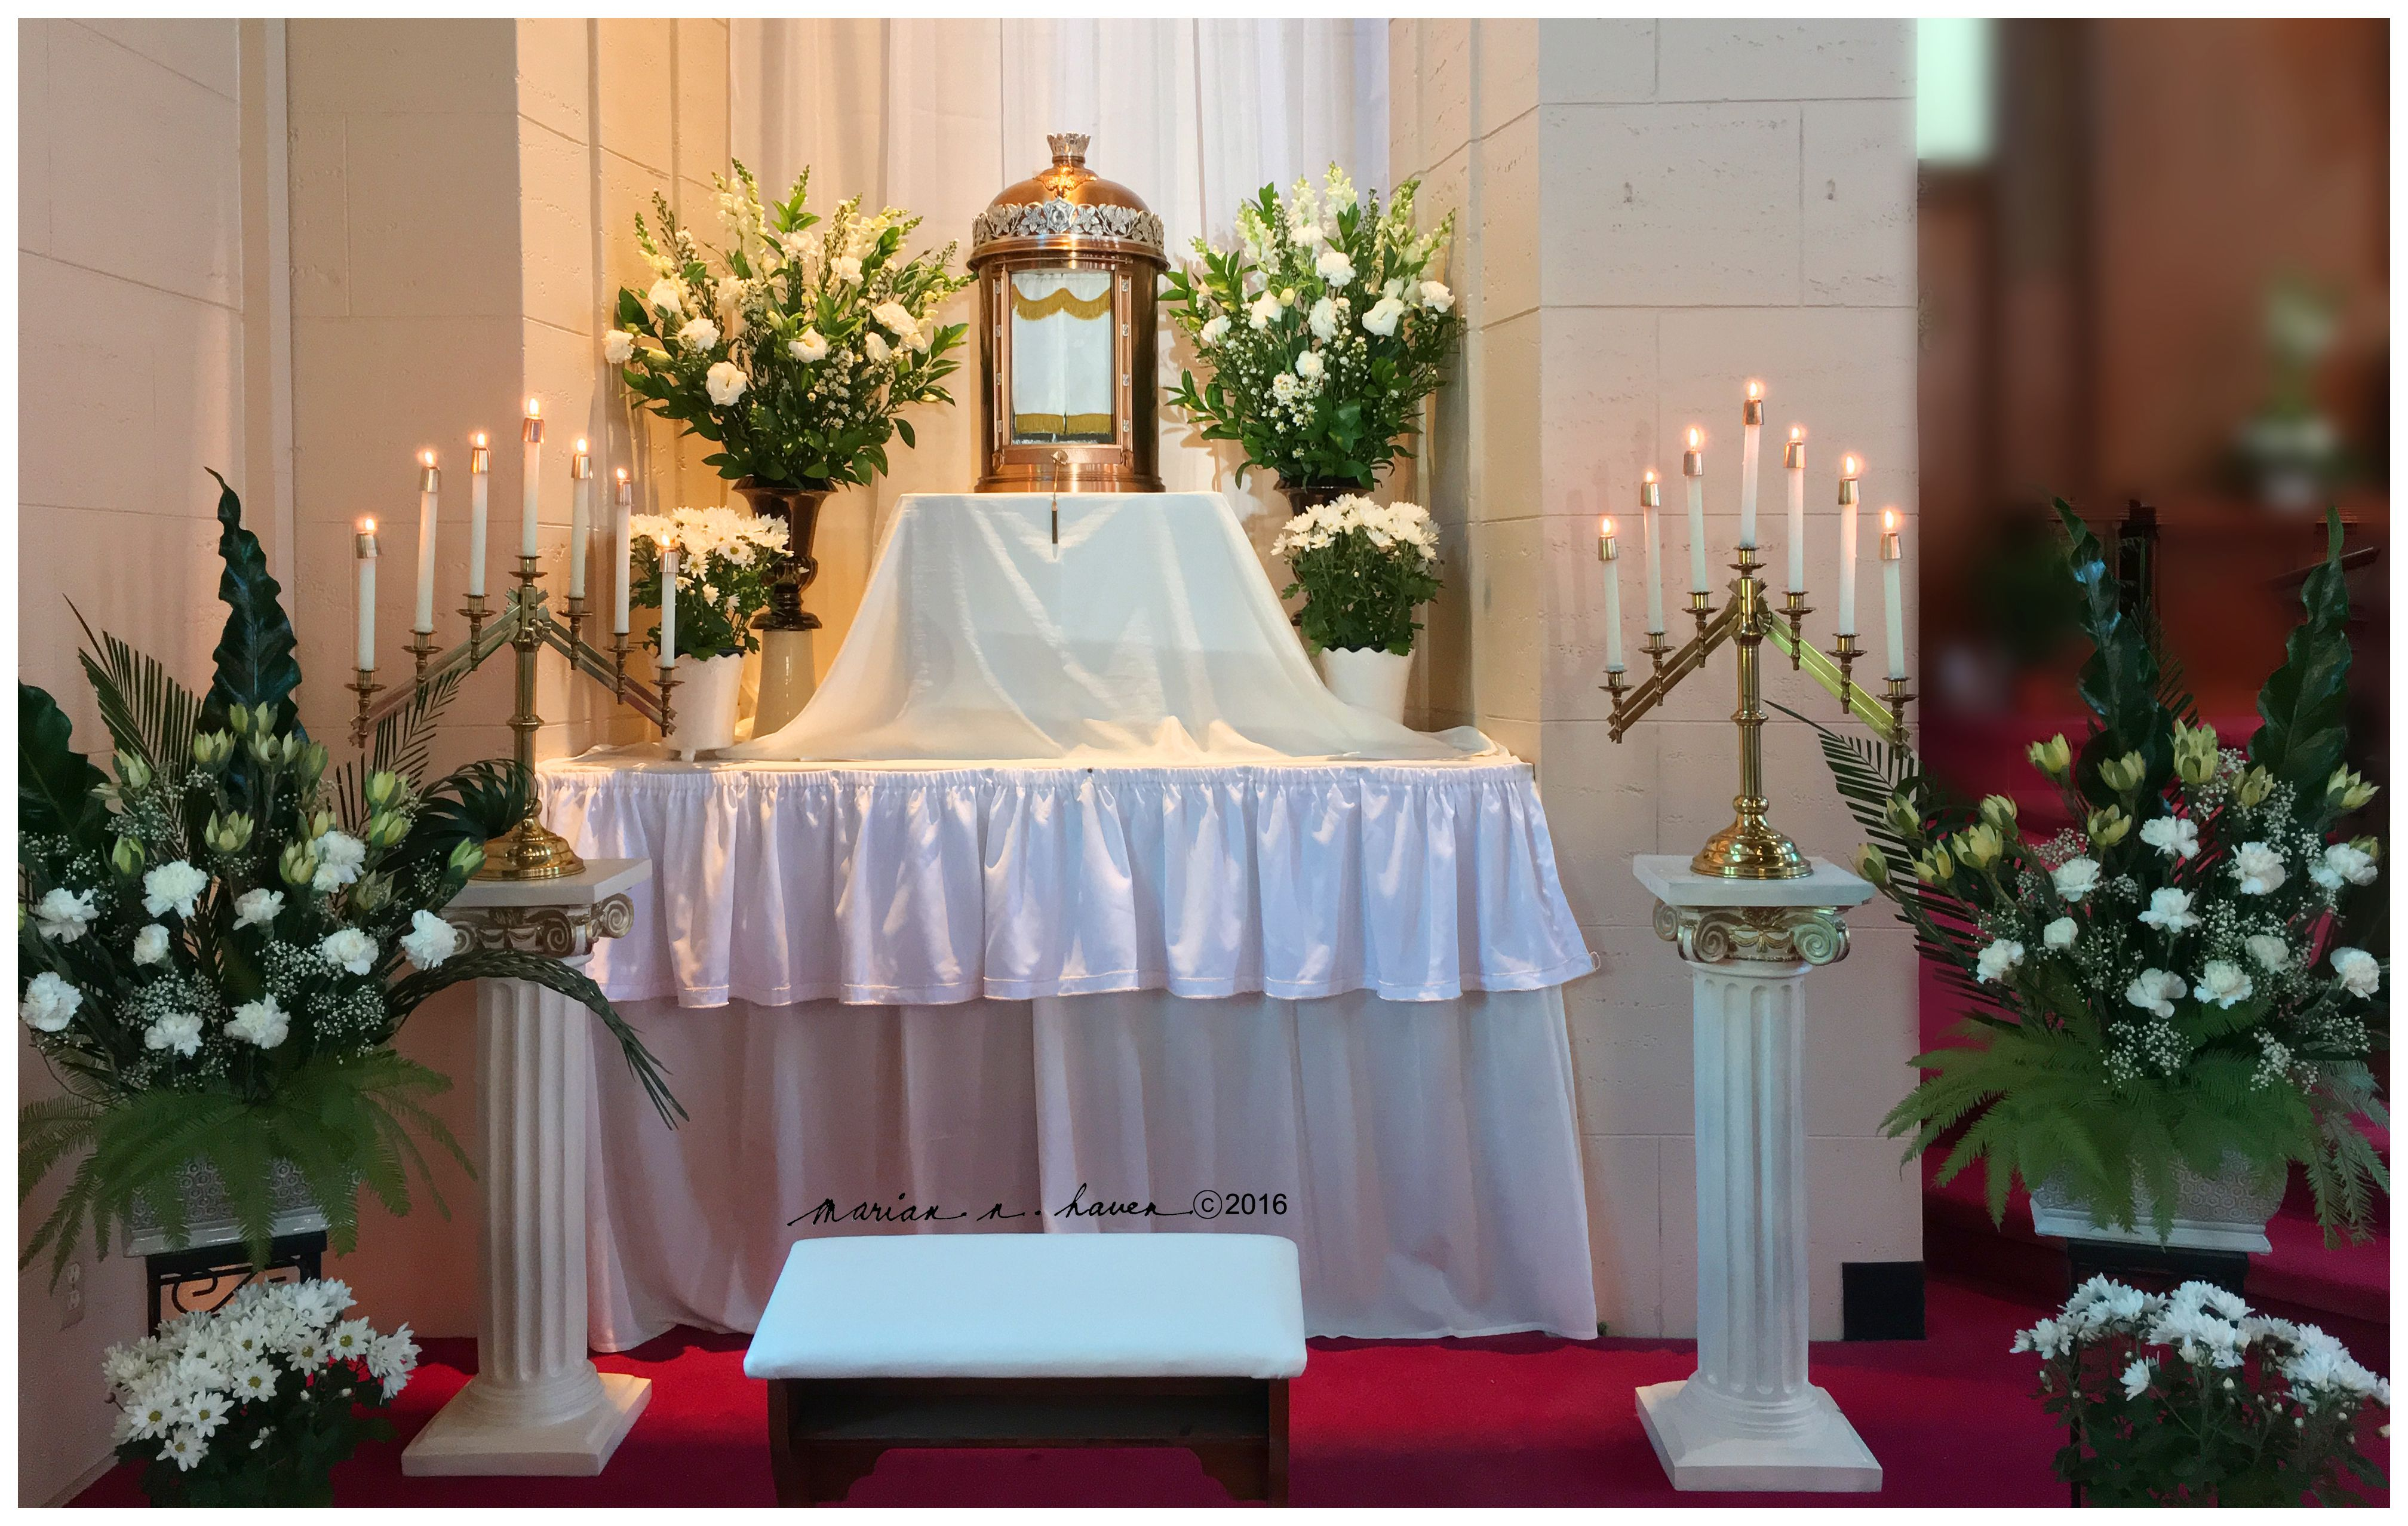 Wedding decoration ideas at church  My Altar of Repose Holy Thursday   Places to Visit  Pinterest